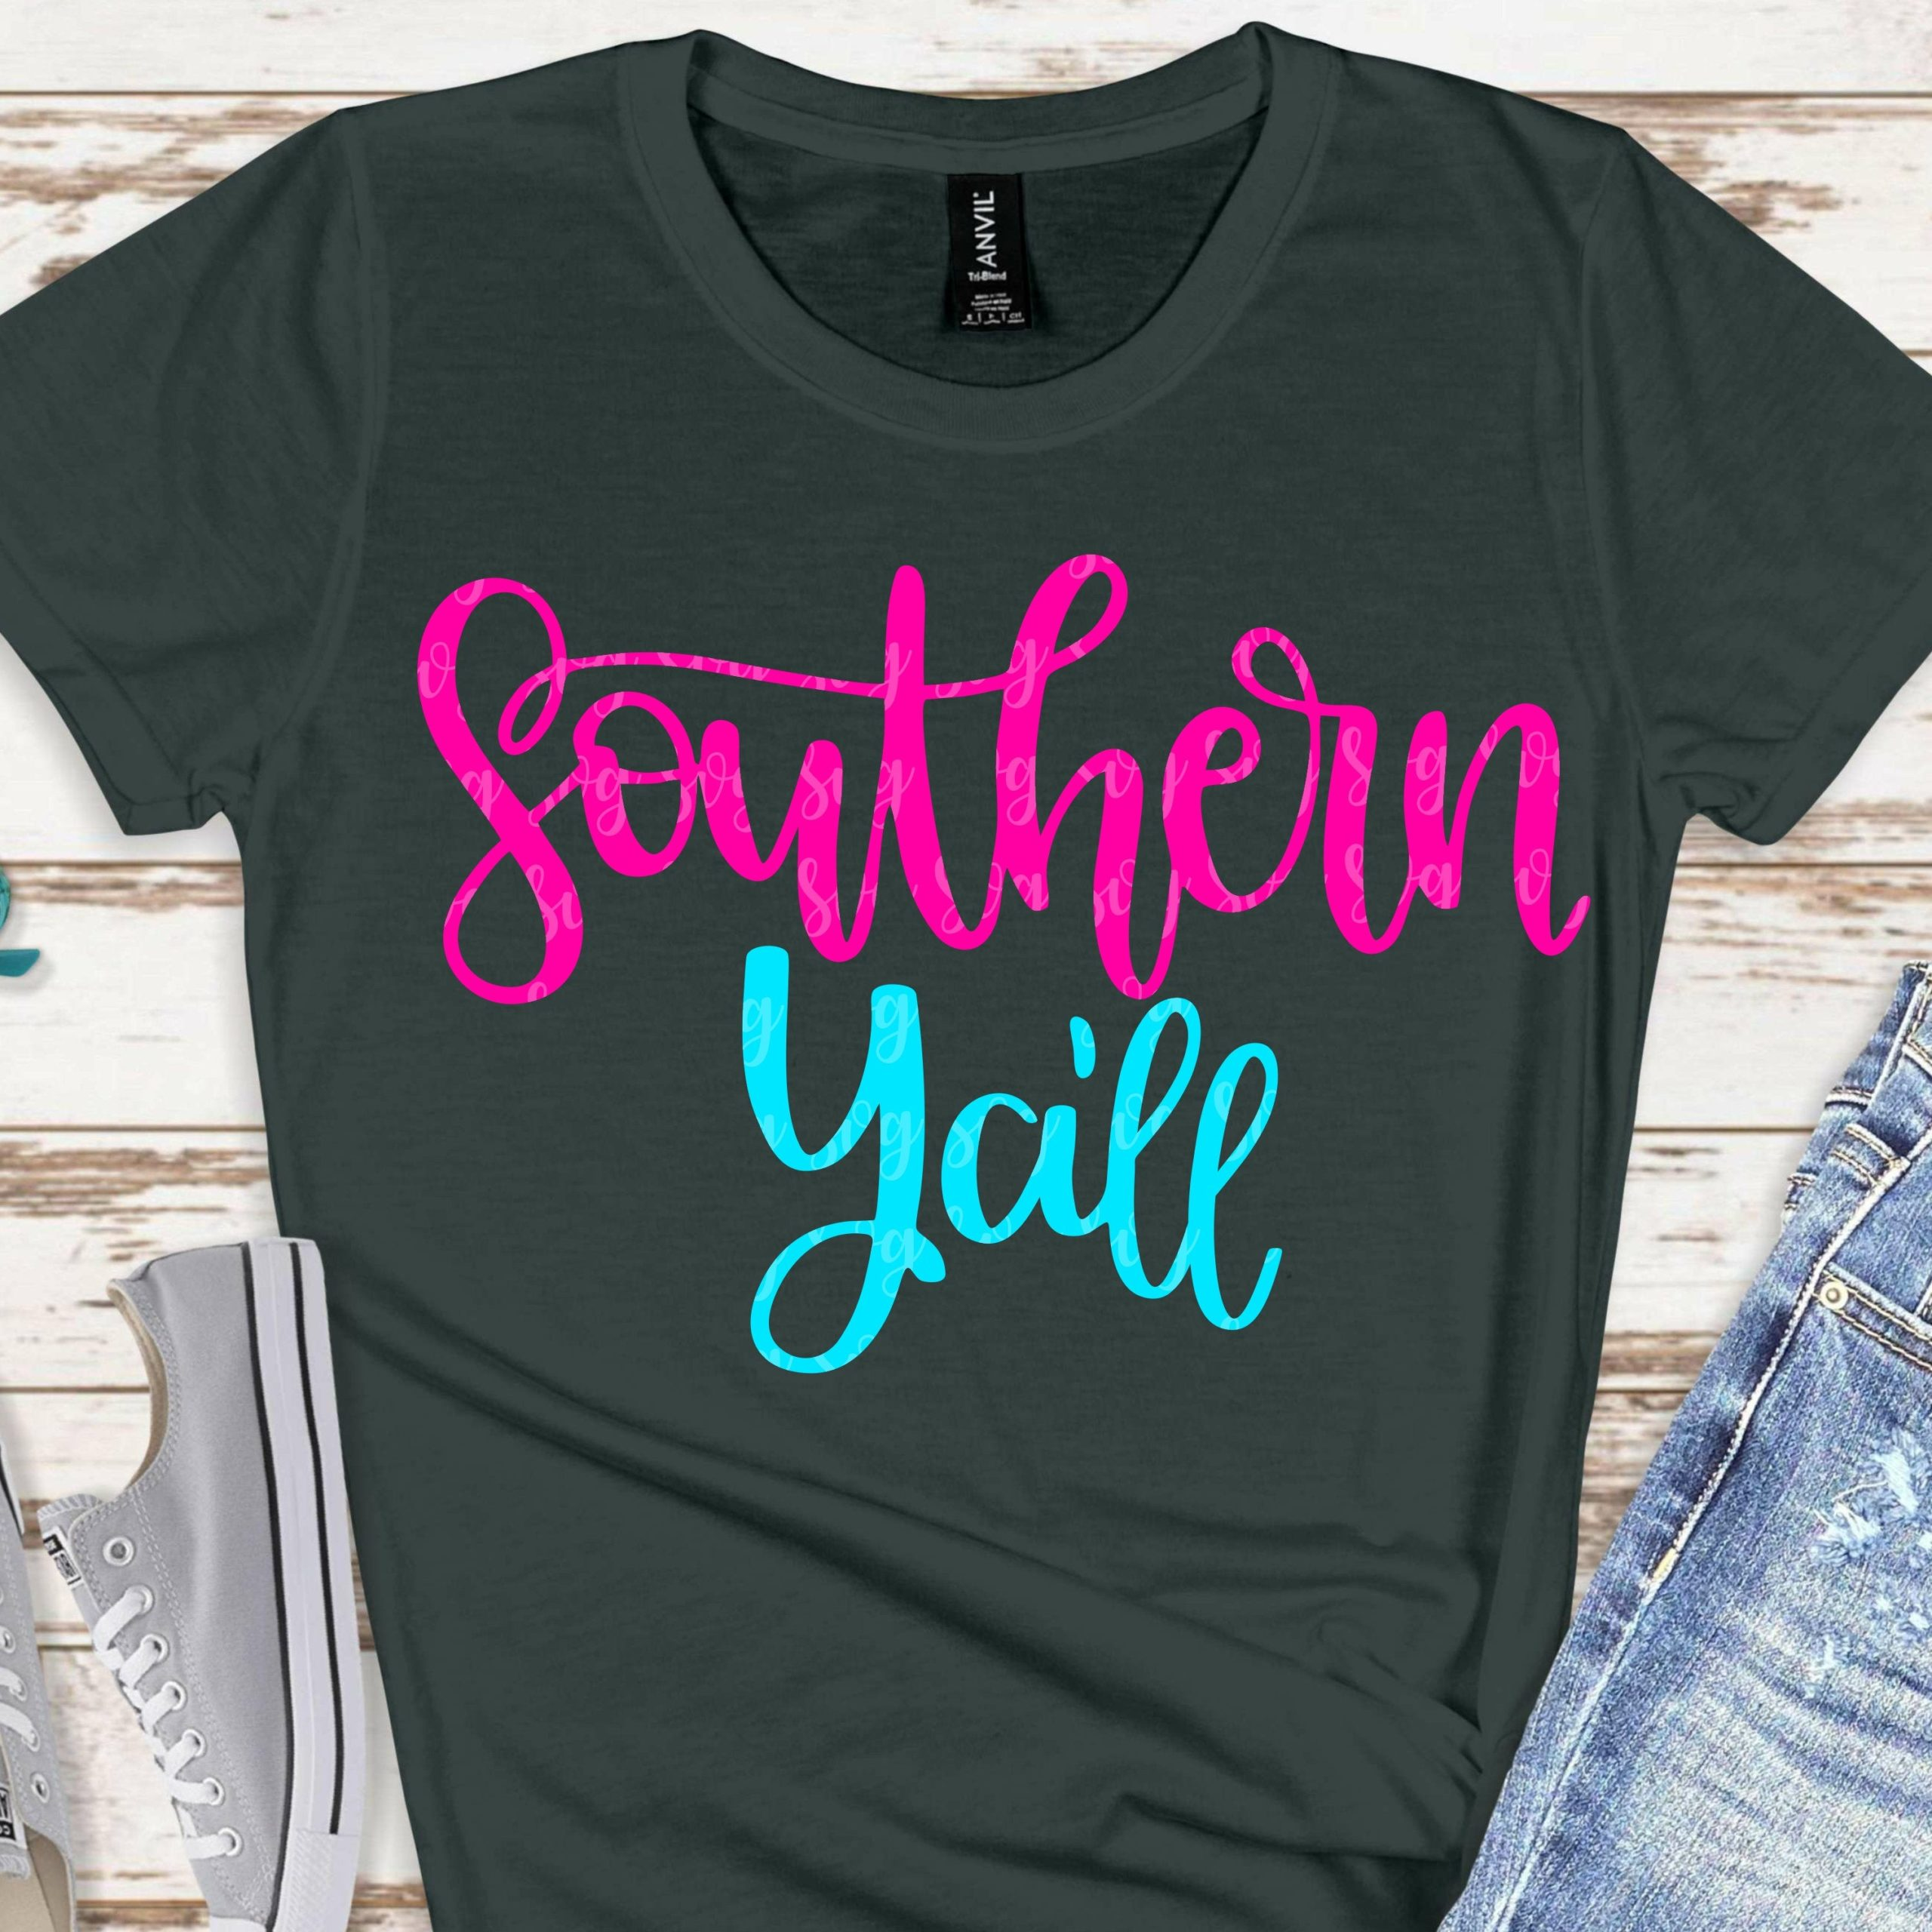 Southern-yall-yall-svg-belle-svg-southern-svg-country-svg-southern-saying-svg-svg-for-cricut-silhouette-cut-file-5ef78f08